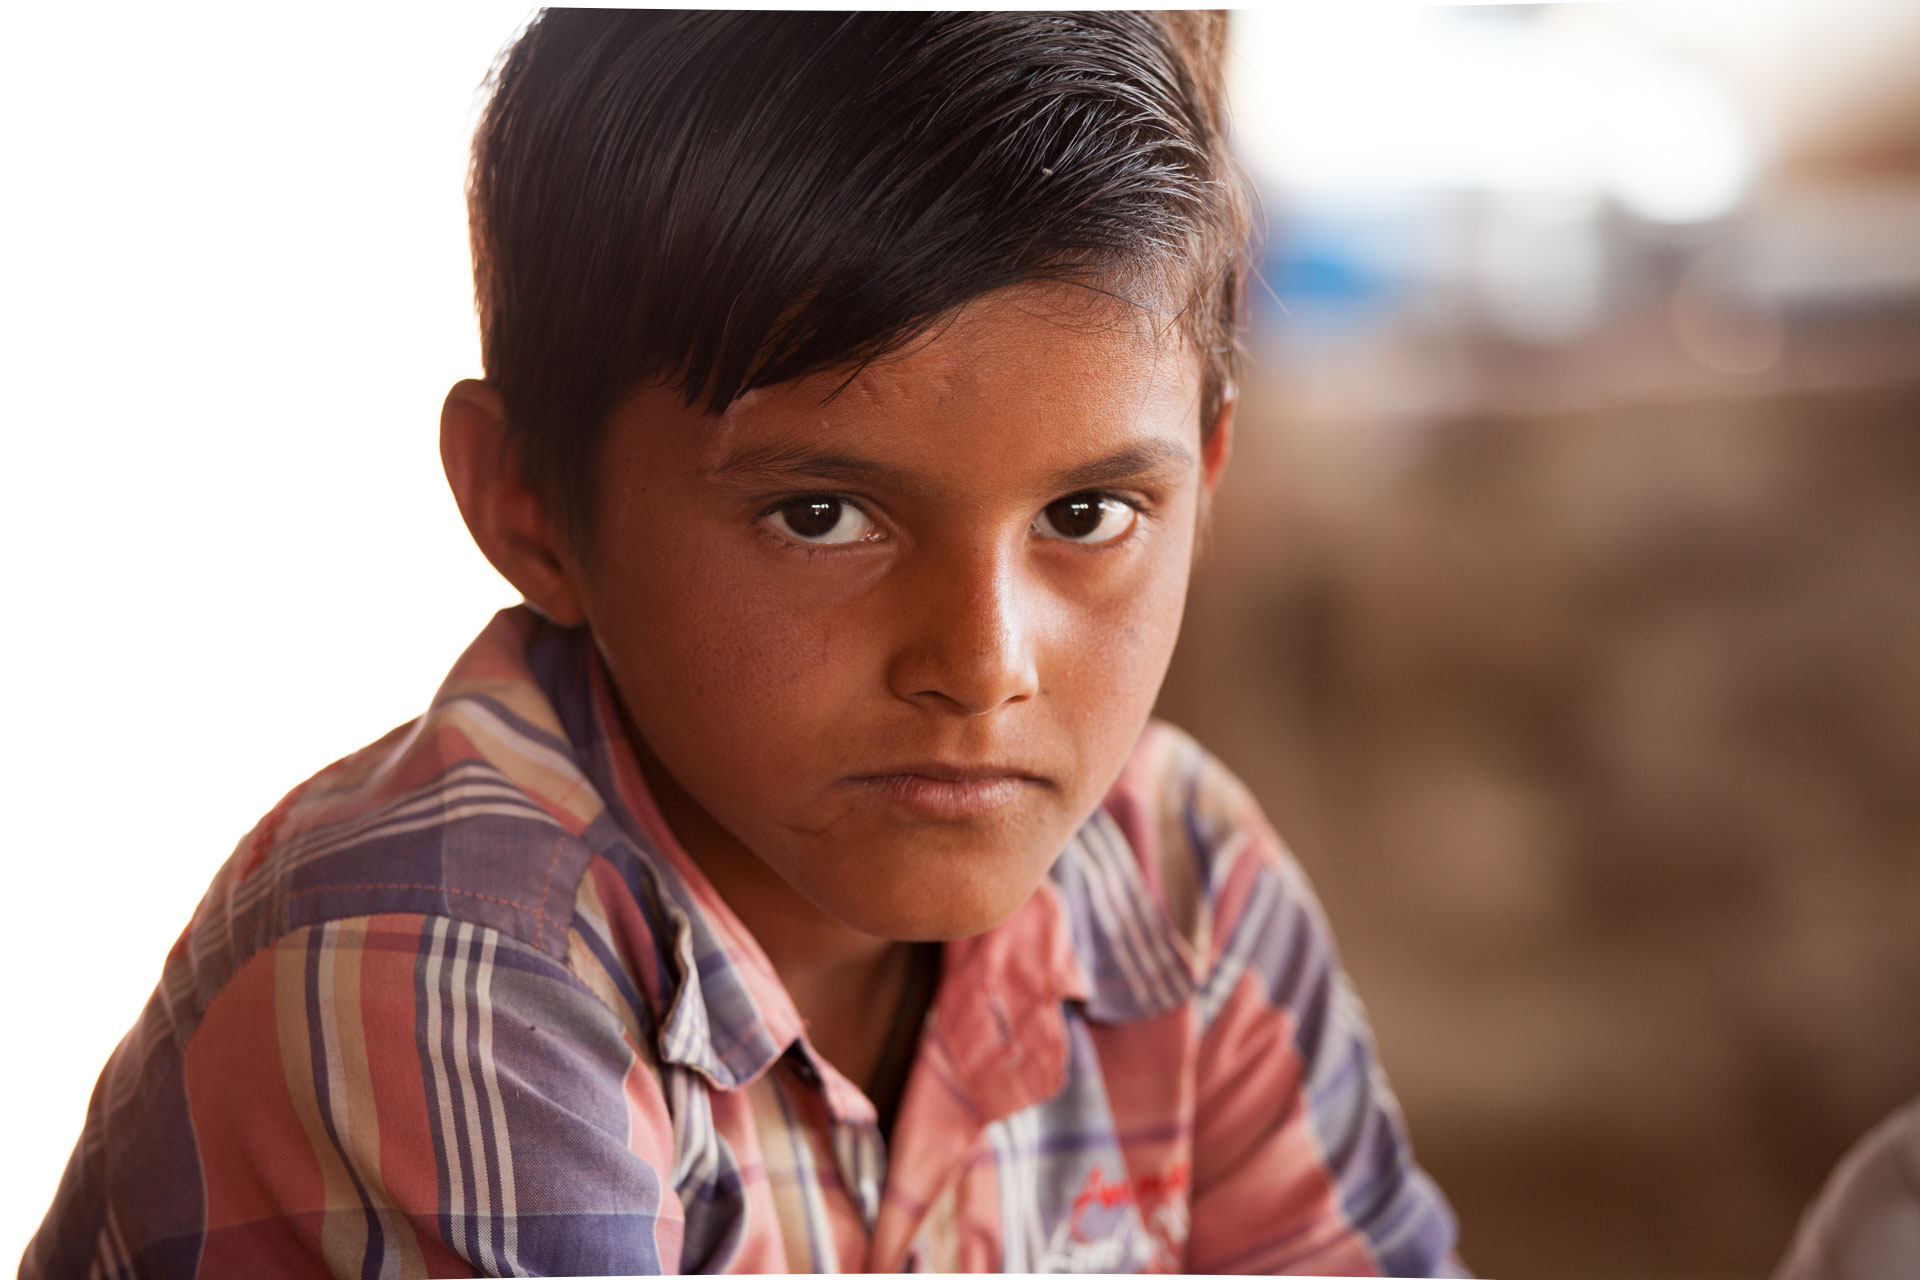 Arjun, brick kiln boy, Gujarat, India. © Crispin Hughes